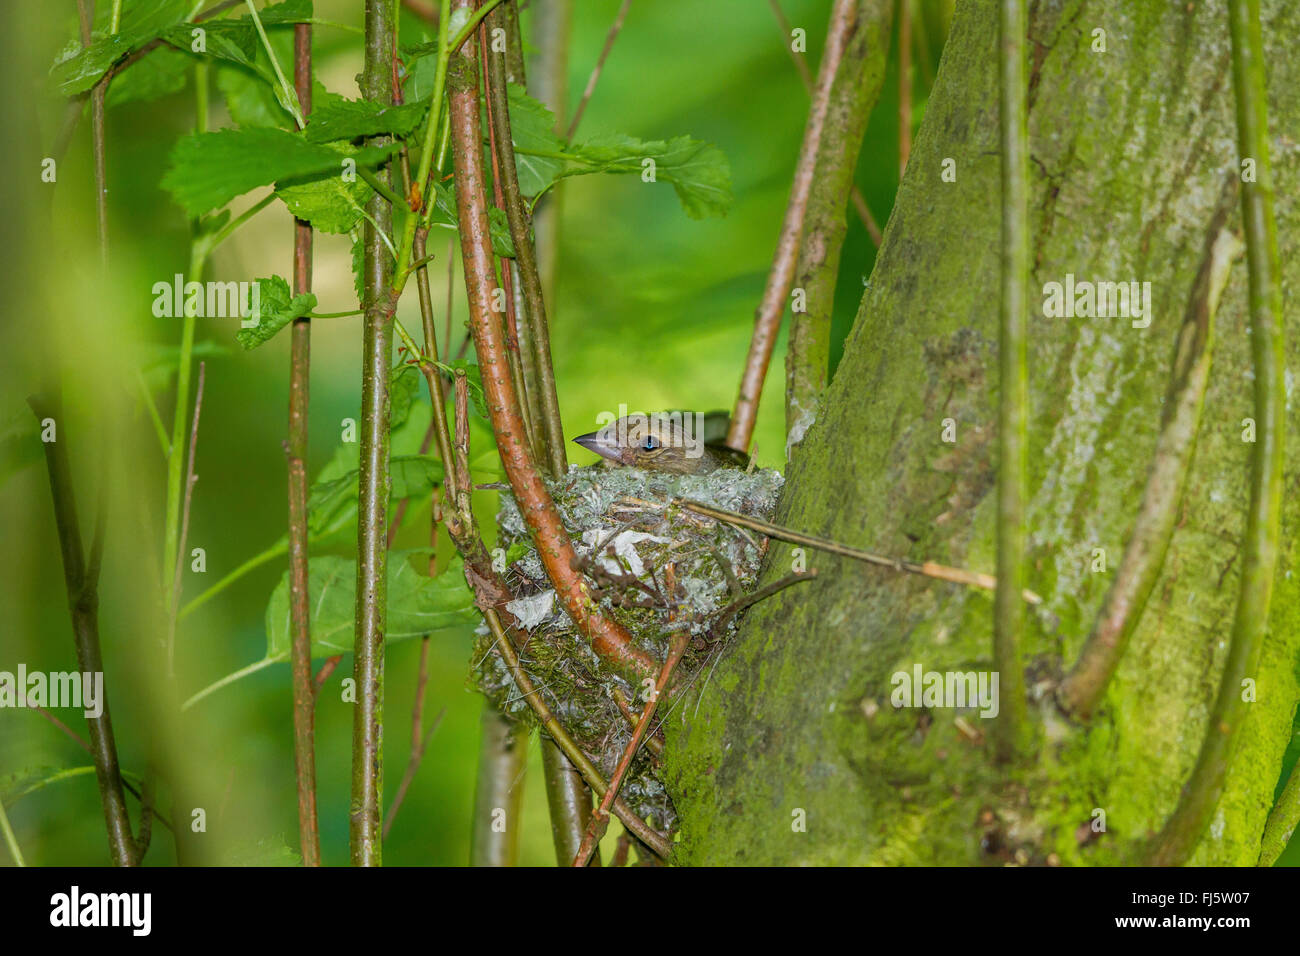 chaffinch (Fringilla coelebs), female in the nest, Germany, Mecklenburg-Western Pomerania - Stock Image